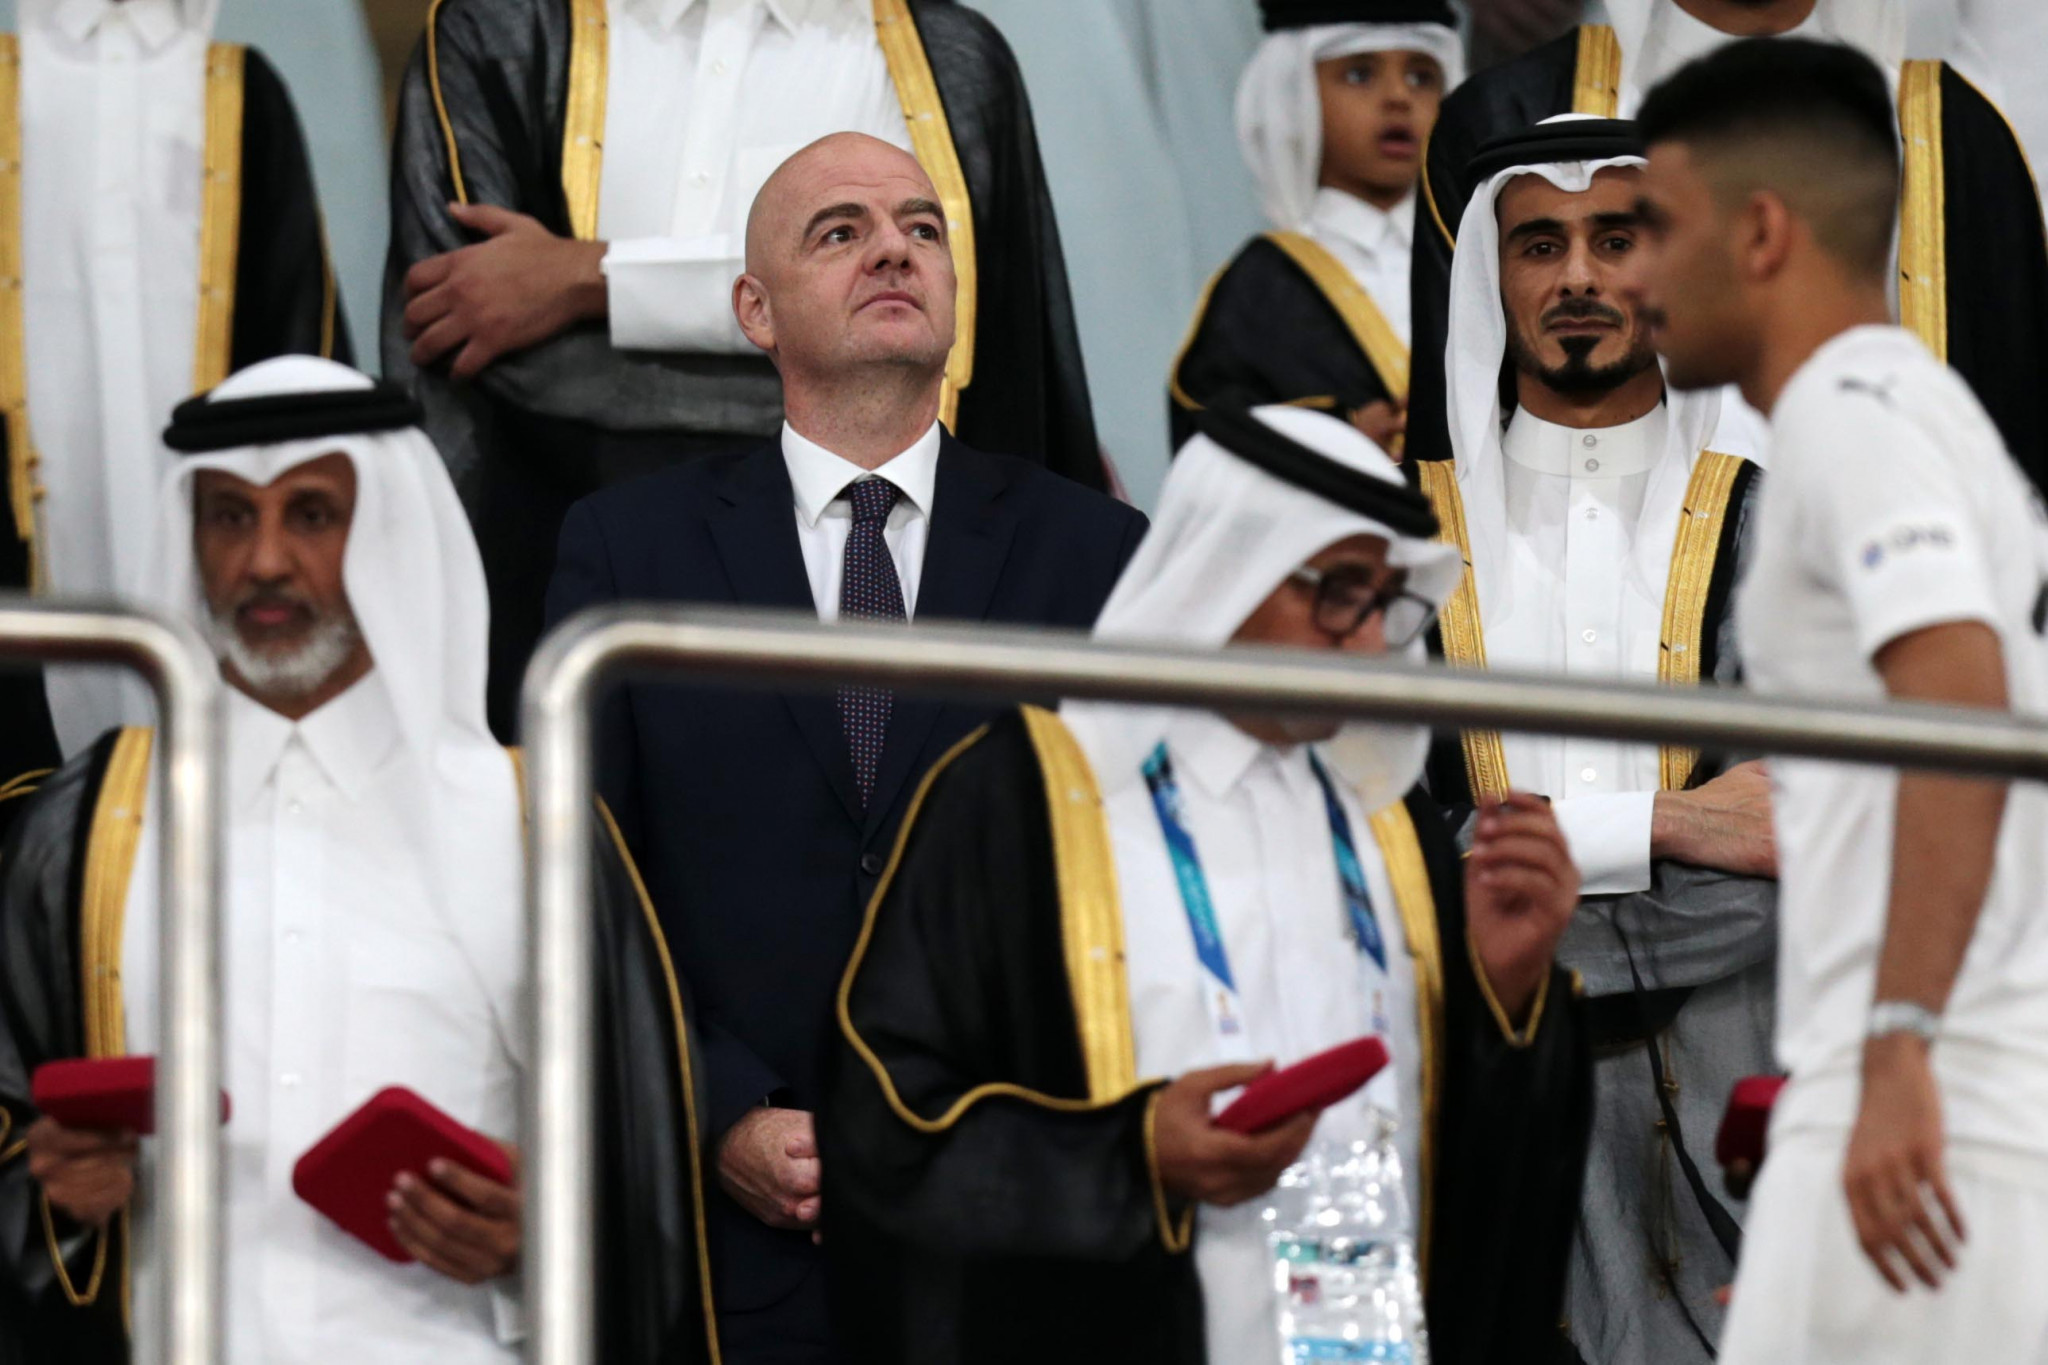 FIFA  President Gianni Infantino has abandoned controversial plans to expand the 2022 World Cup in Qatar 32 to 48 teams ©Getty Images